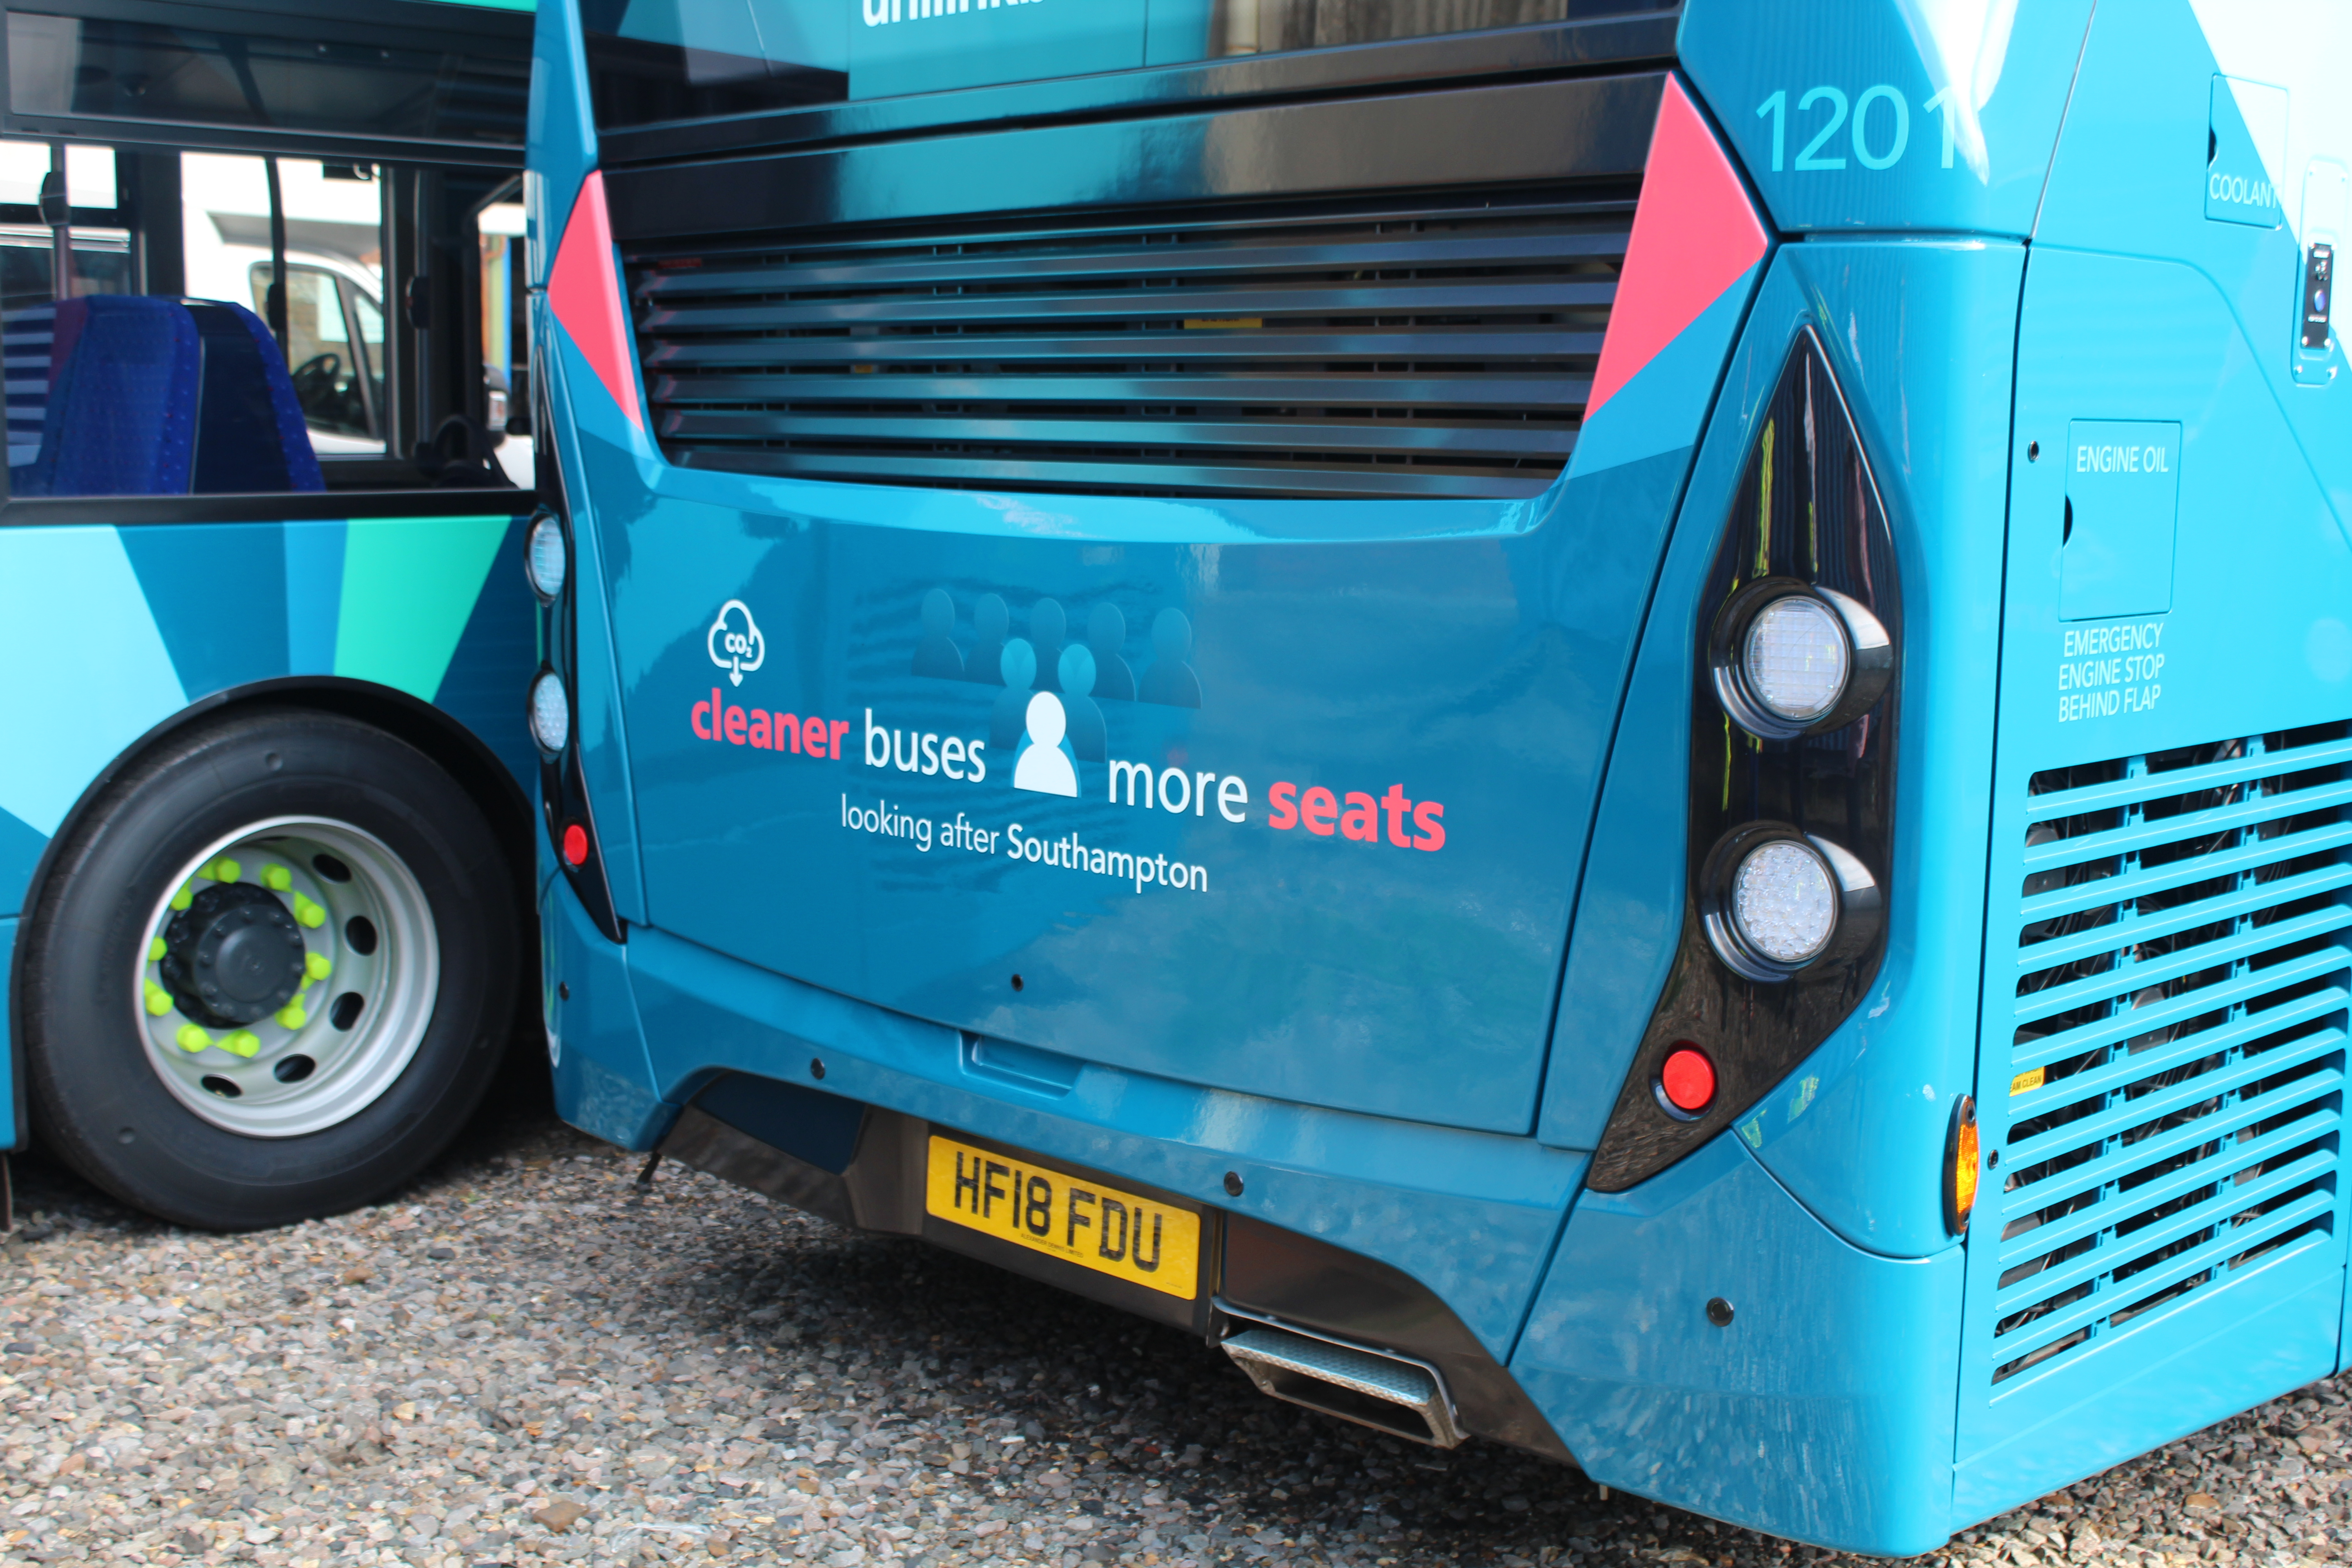 Travel by bus to help improve our city's air quality